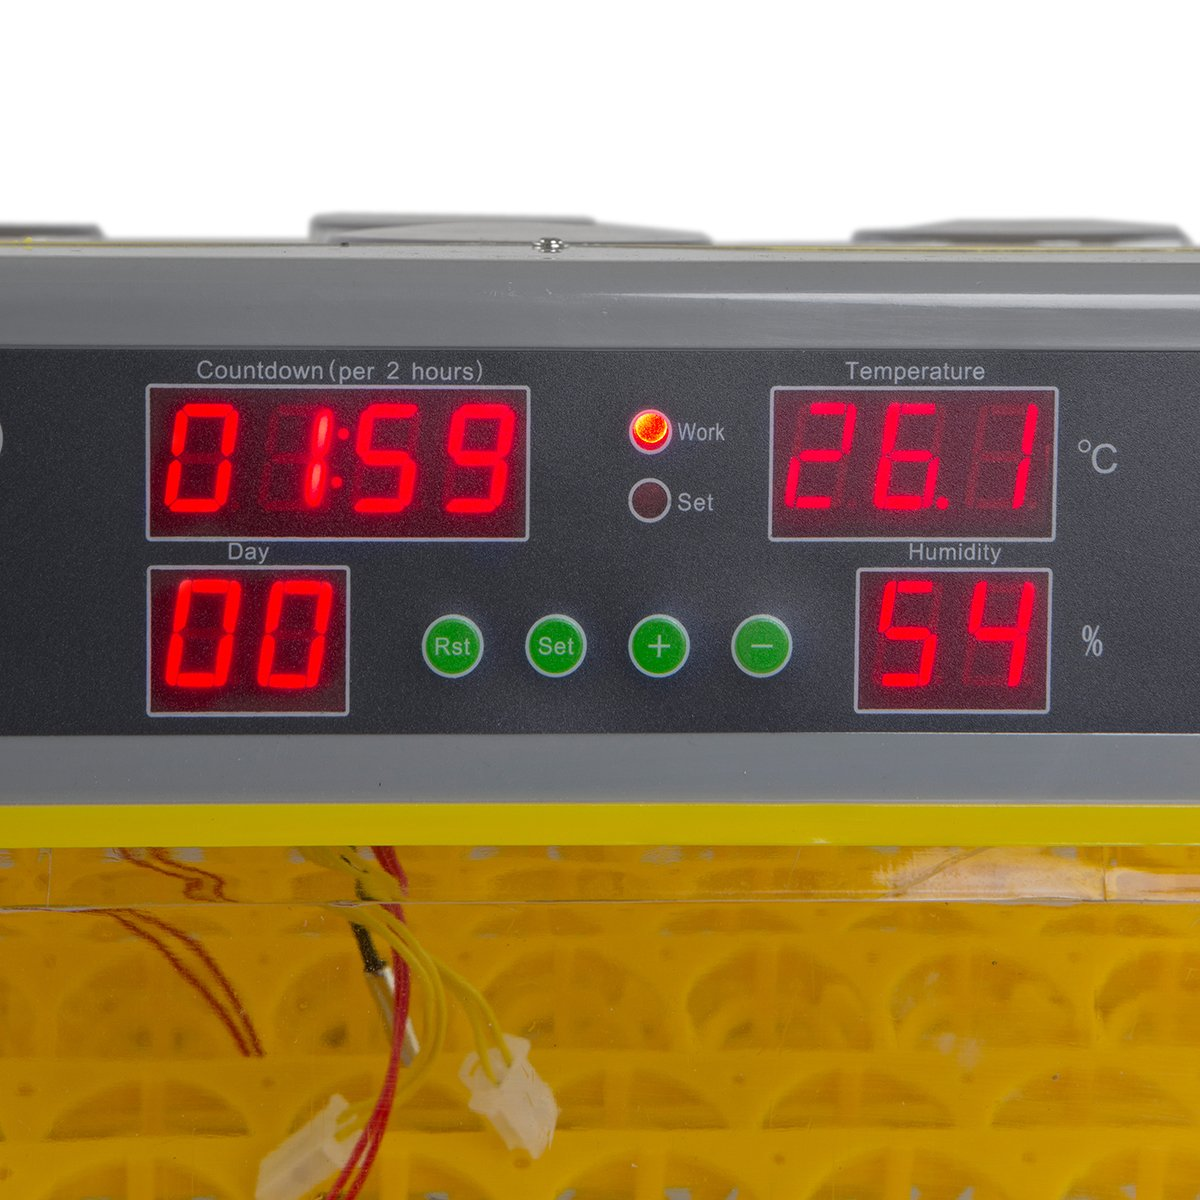 XtremepowerUS Egg Incubator 96 Eggs 2 Layer Digital Control Panel Poultry Hatcher Auto Egg Turner by XtremepowerUS (Image #4)